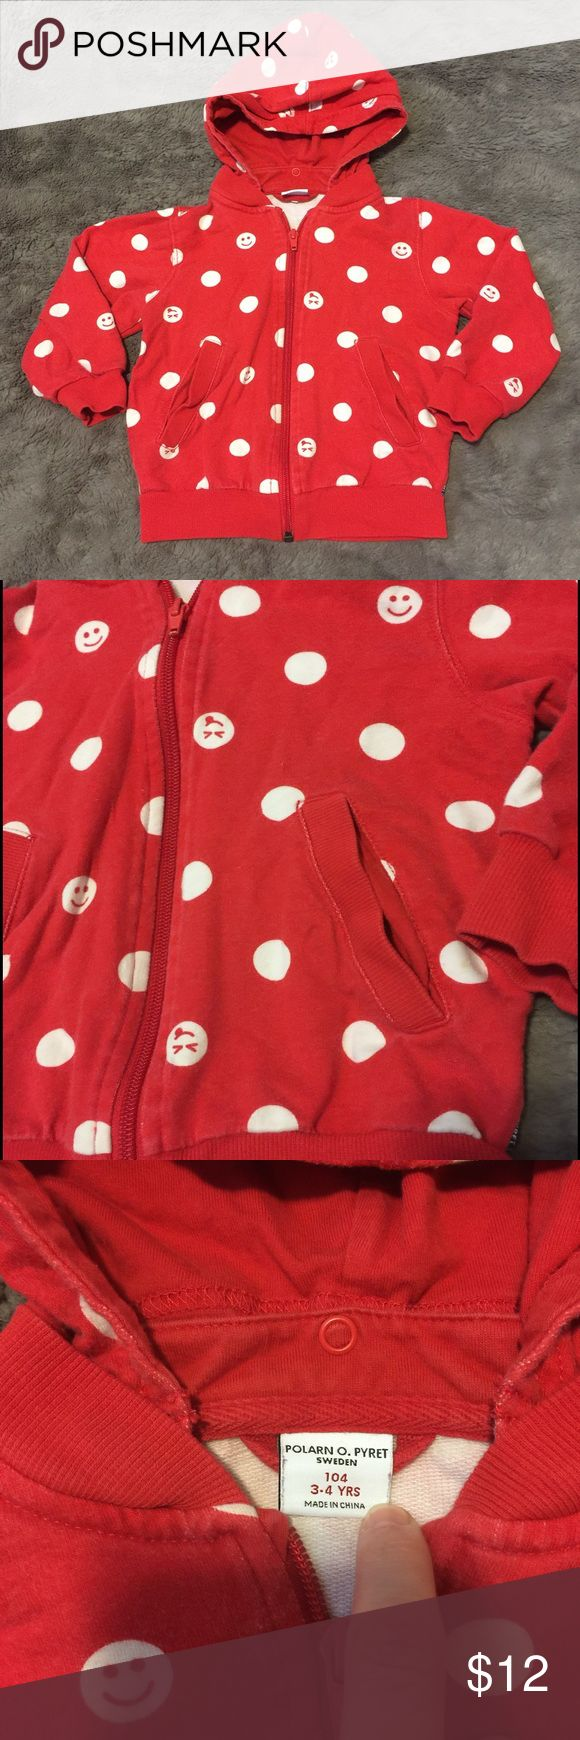 Polarn O. Pyret Polka Dot Hoodie Red cotton hoodie with white polka dots and smiley faces from fabulous eco friendly Swedish line Polarn O Pyret. Hood is removable via snaps. Size 3-4, but runs a tad closer to a 3 IMO. Gender neutral. ⭐️⭐️⭐️Please note: This hoodie has light-moderate wash wear and some scratched paint on the zipper. In good used condition overall with lots of life left! Polarn O. Pyret Shirts & Tops Sweatshirts & Hoodies